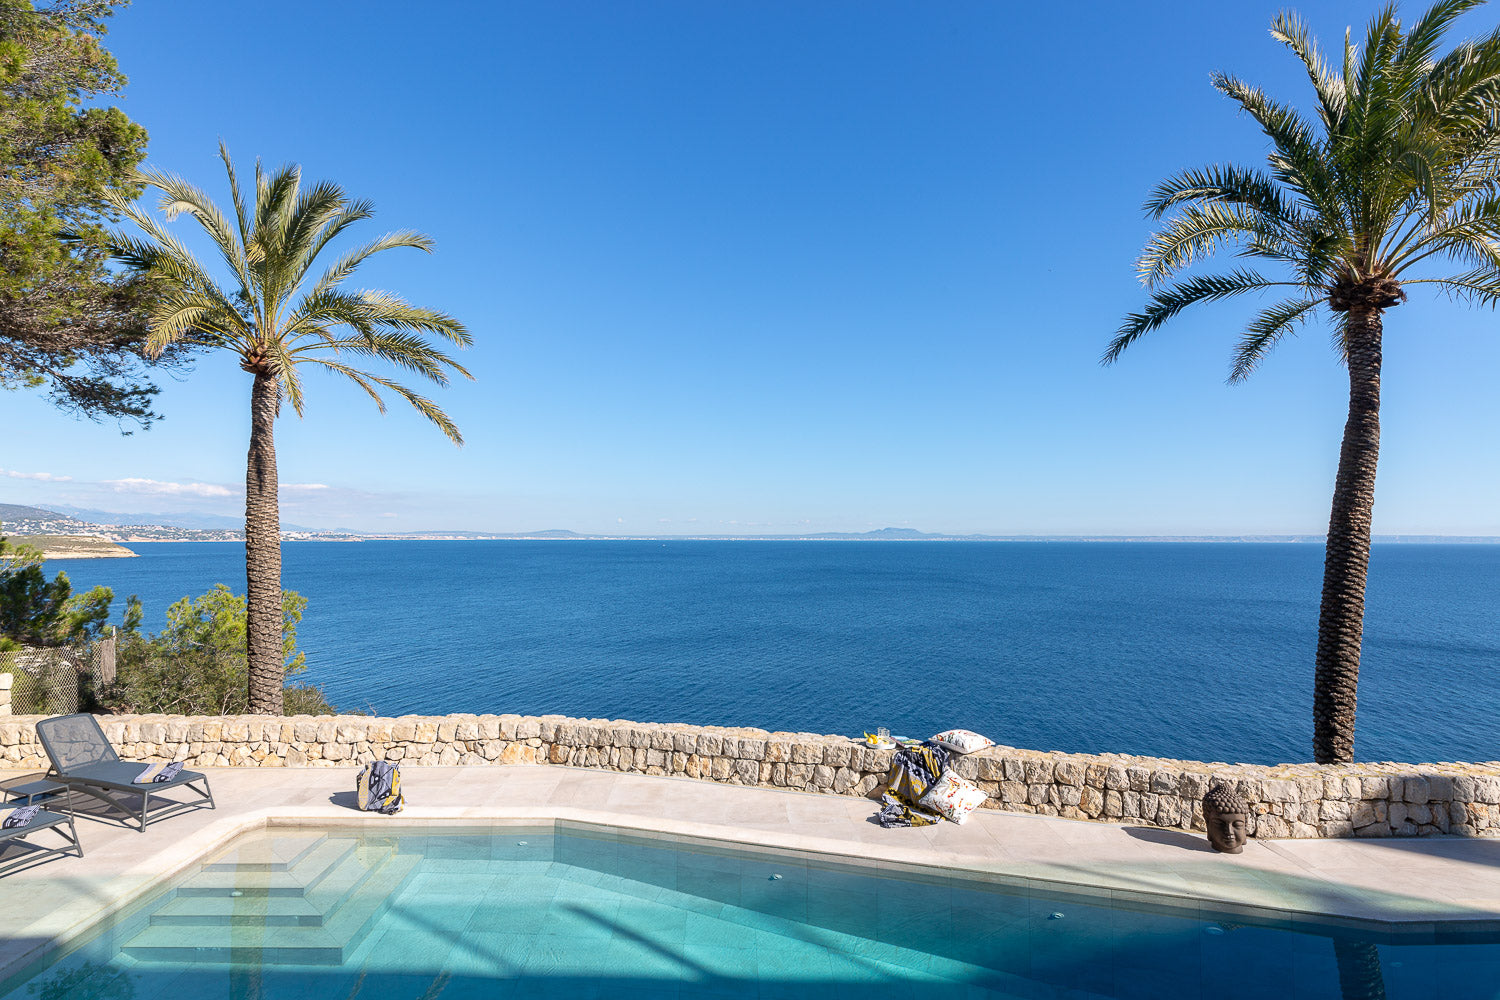 View of the Sea from a pool terrace